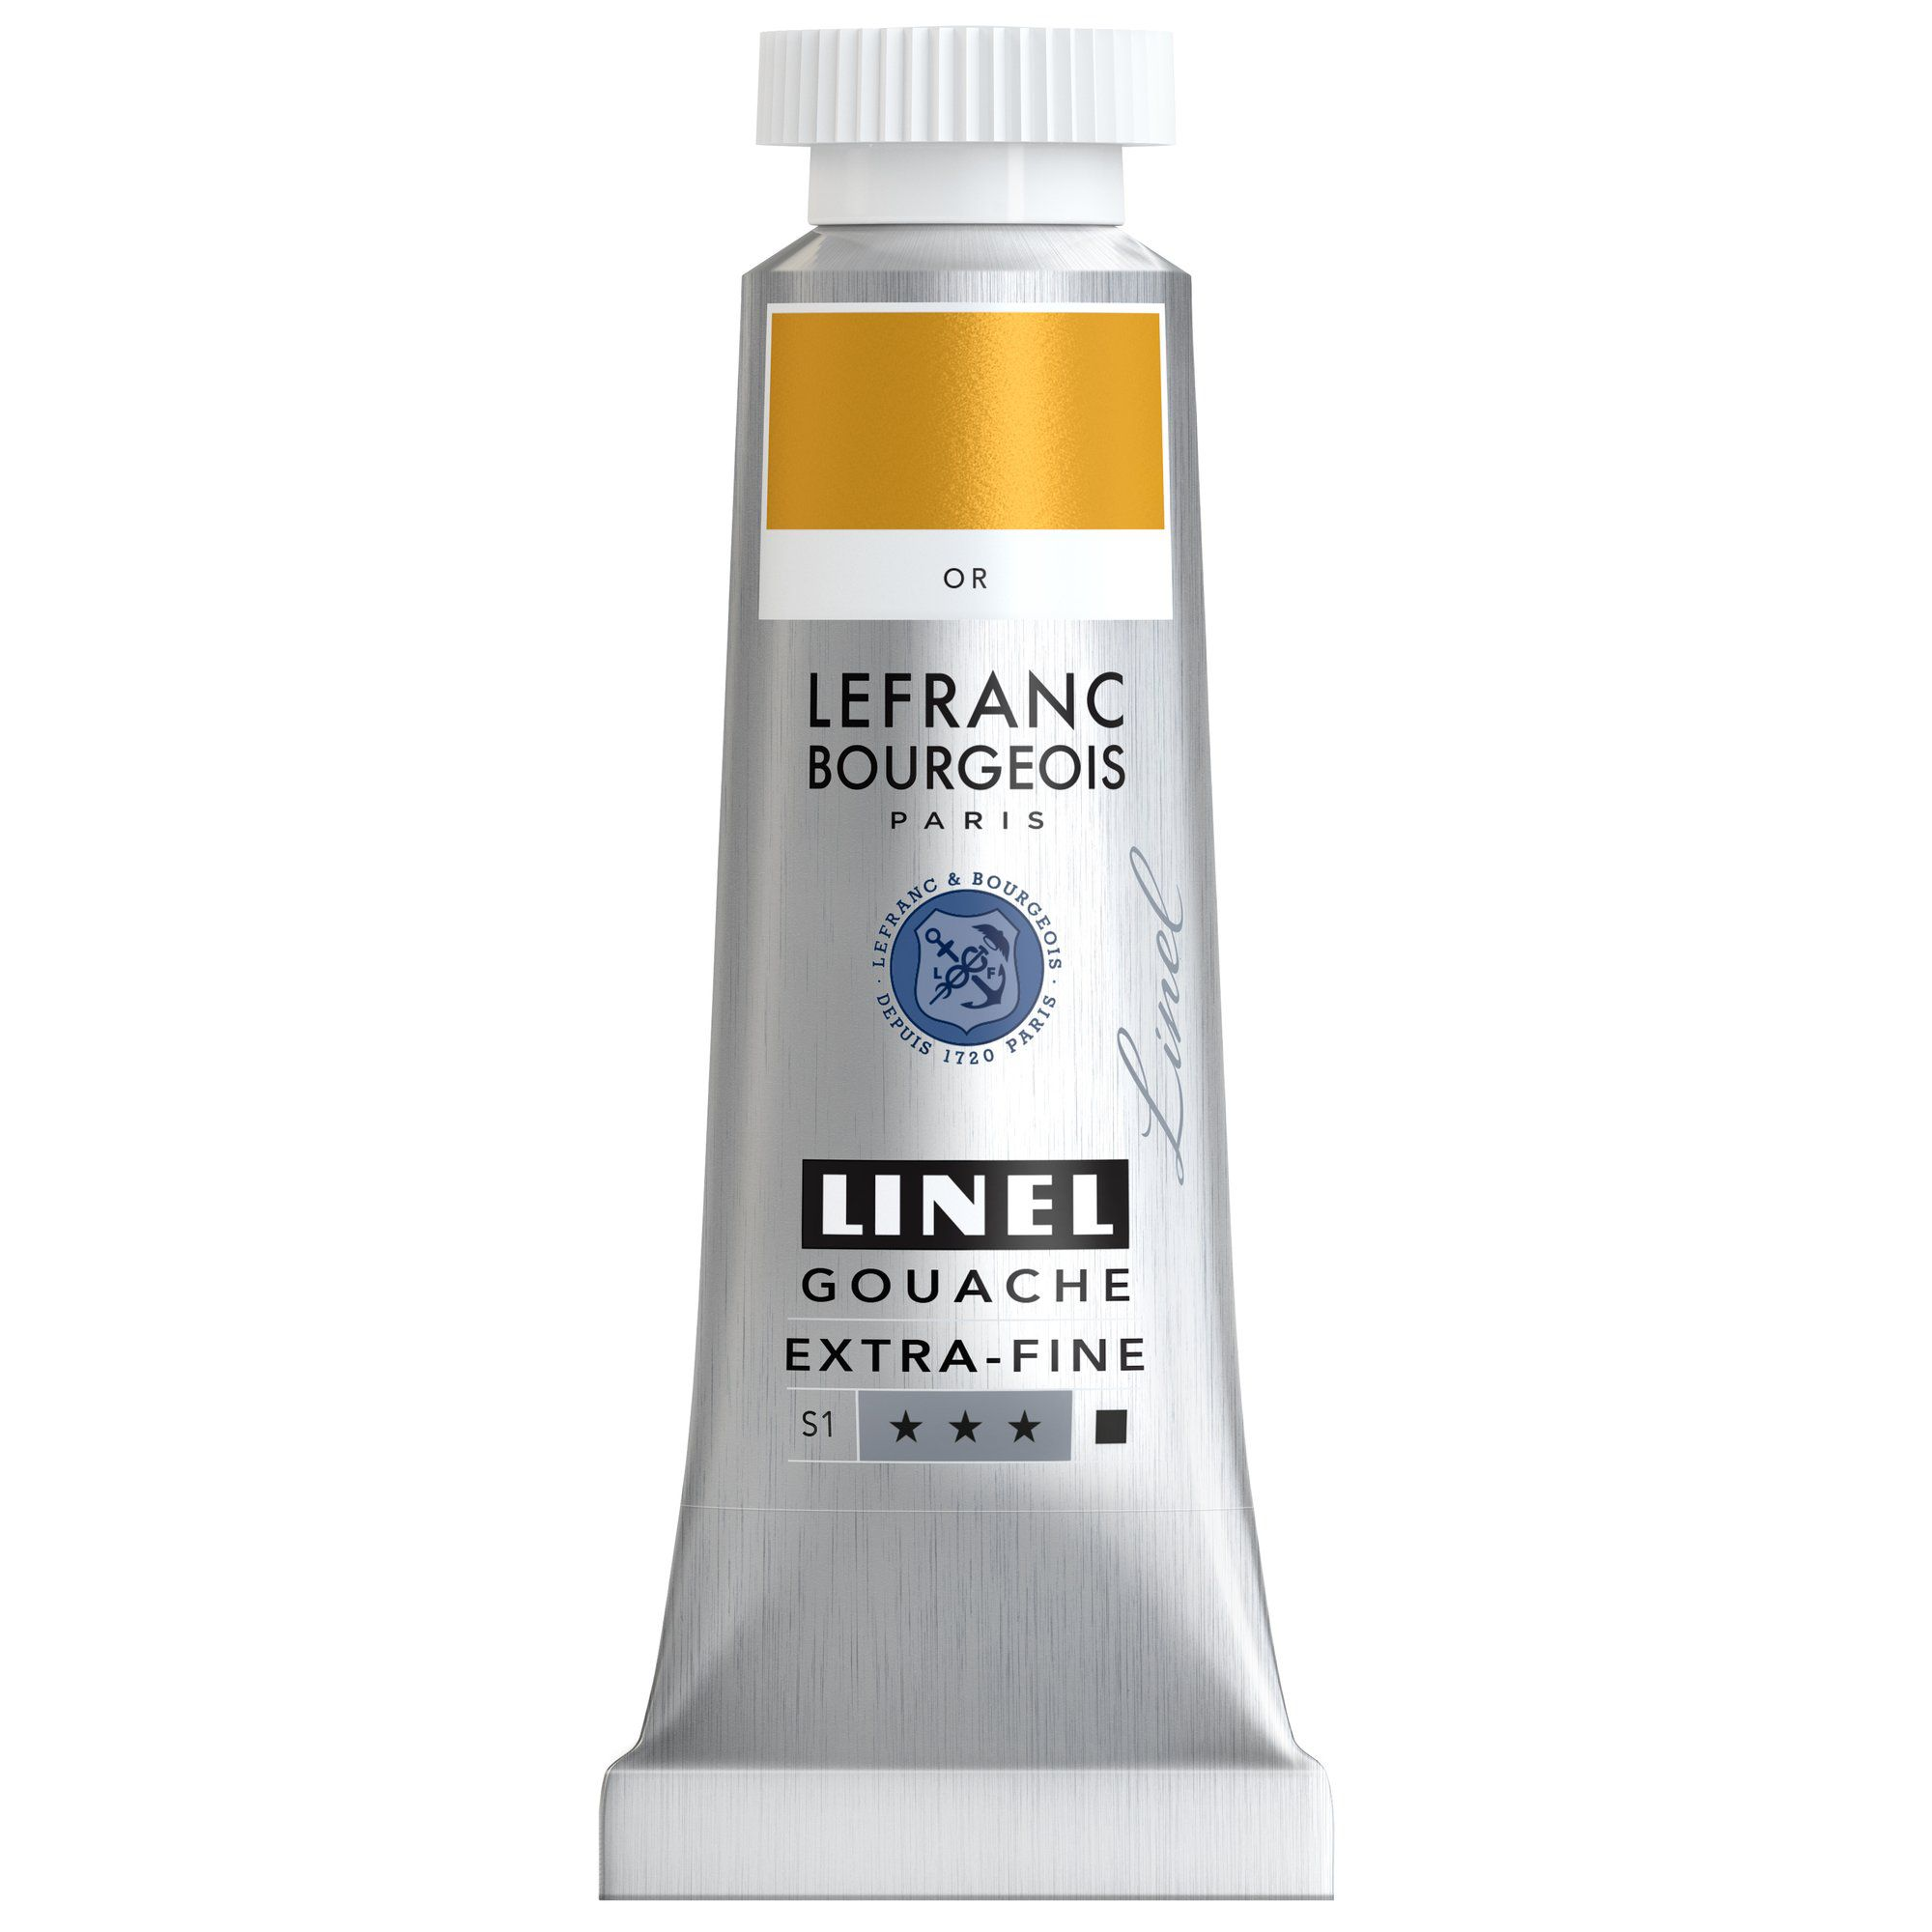 GOUACHE EXTRA-FINE LINEL 14ML OR